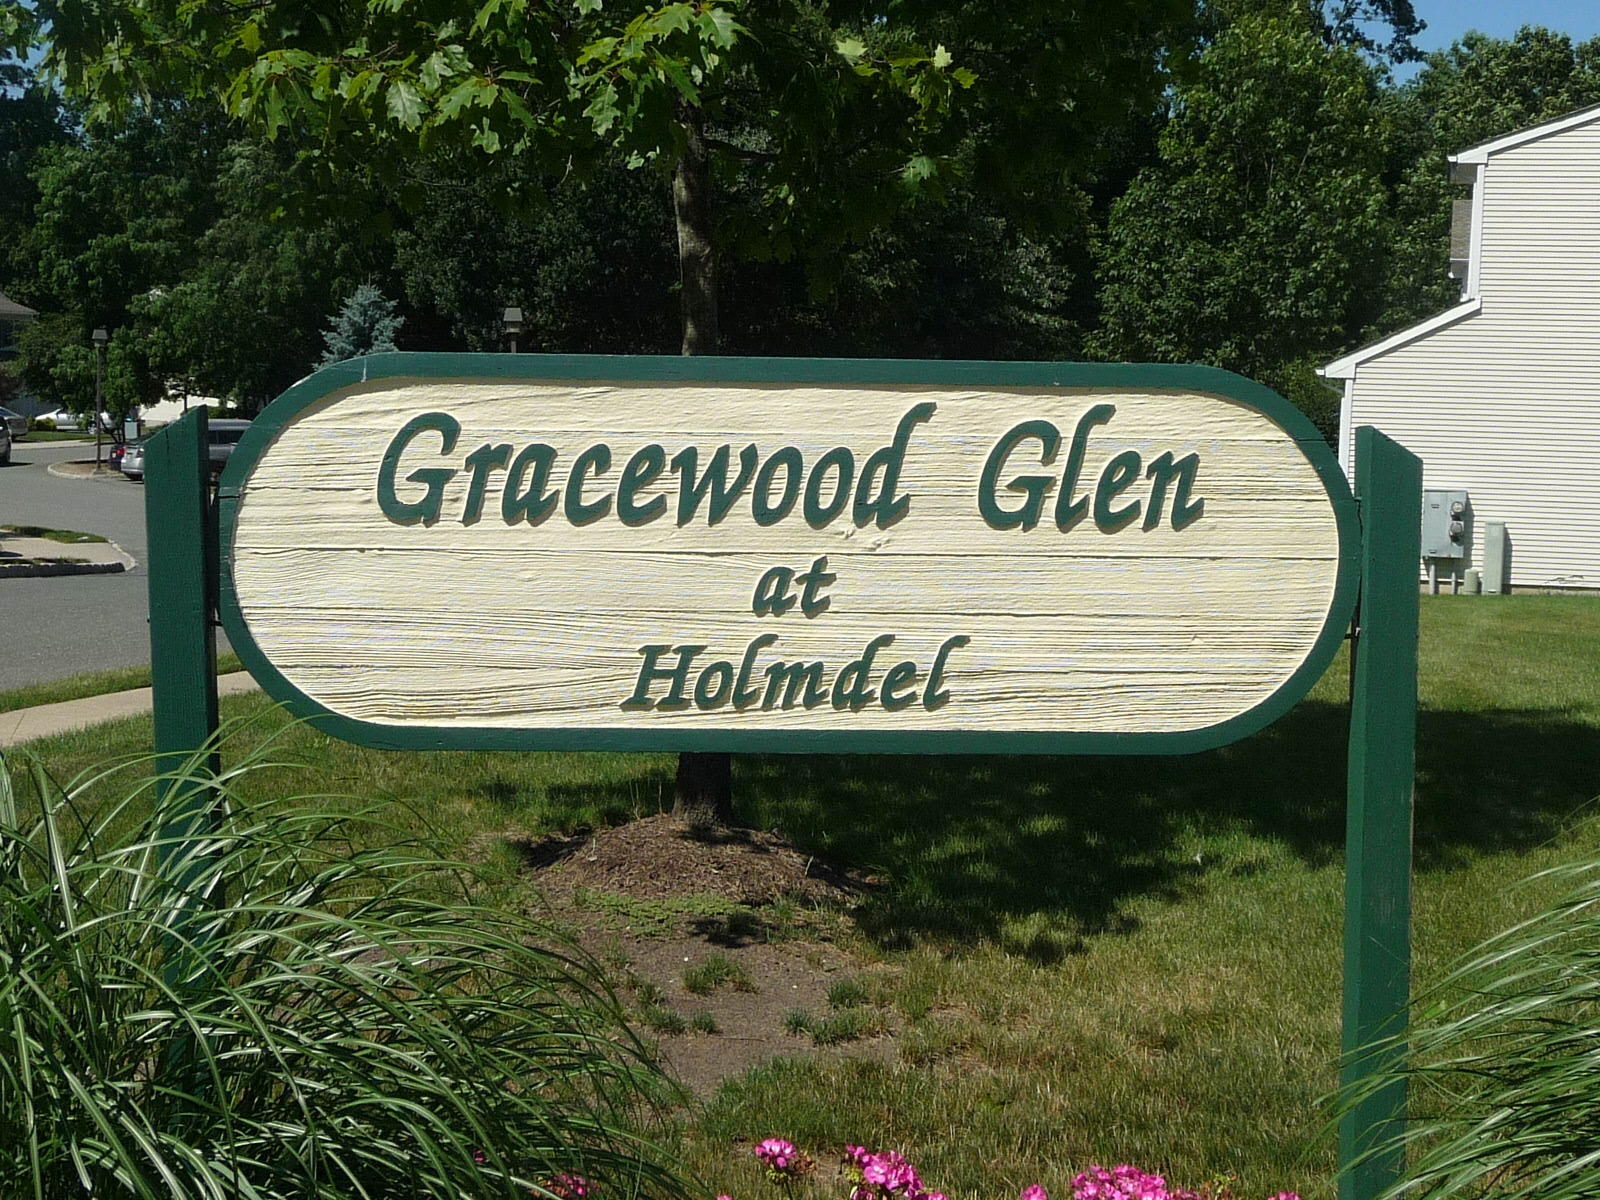 Grace Wood Glen condos are located on Maria Court in Holmdel NJ, just off of Middle Road.